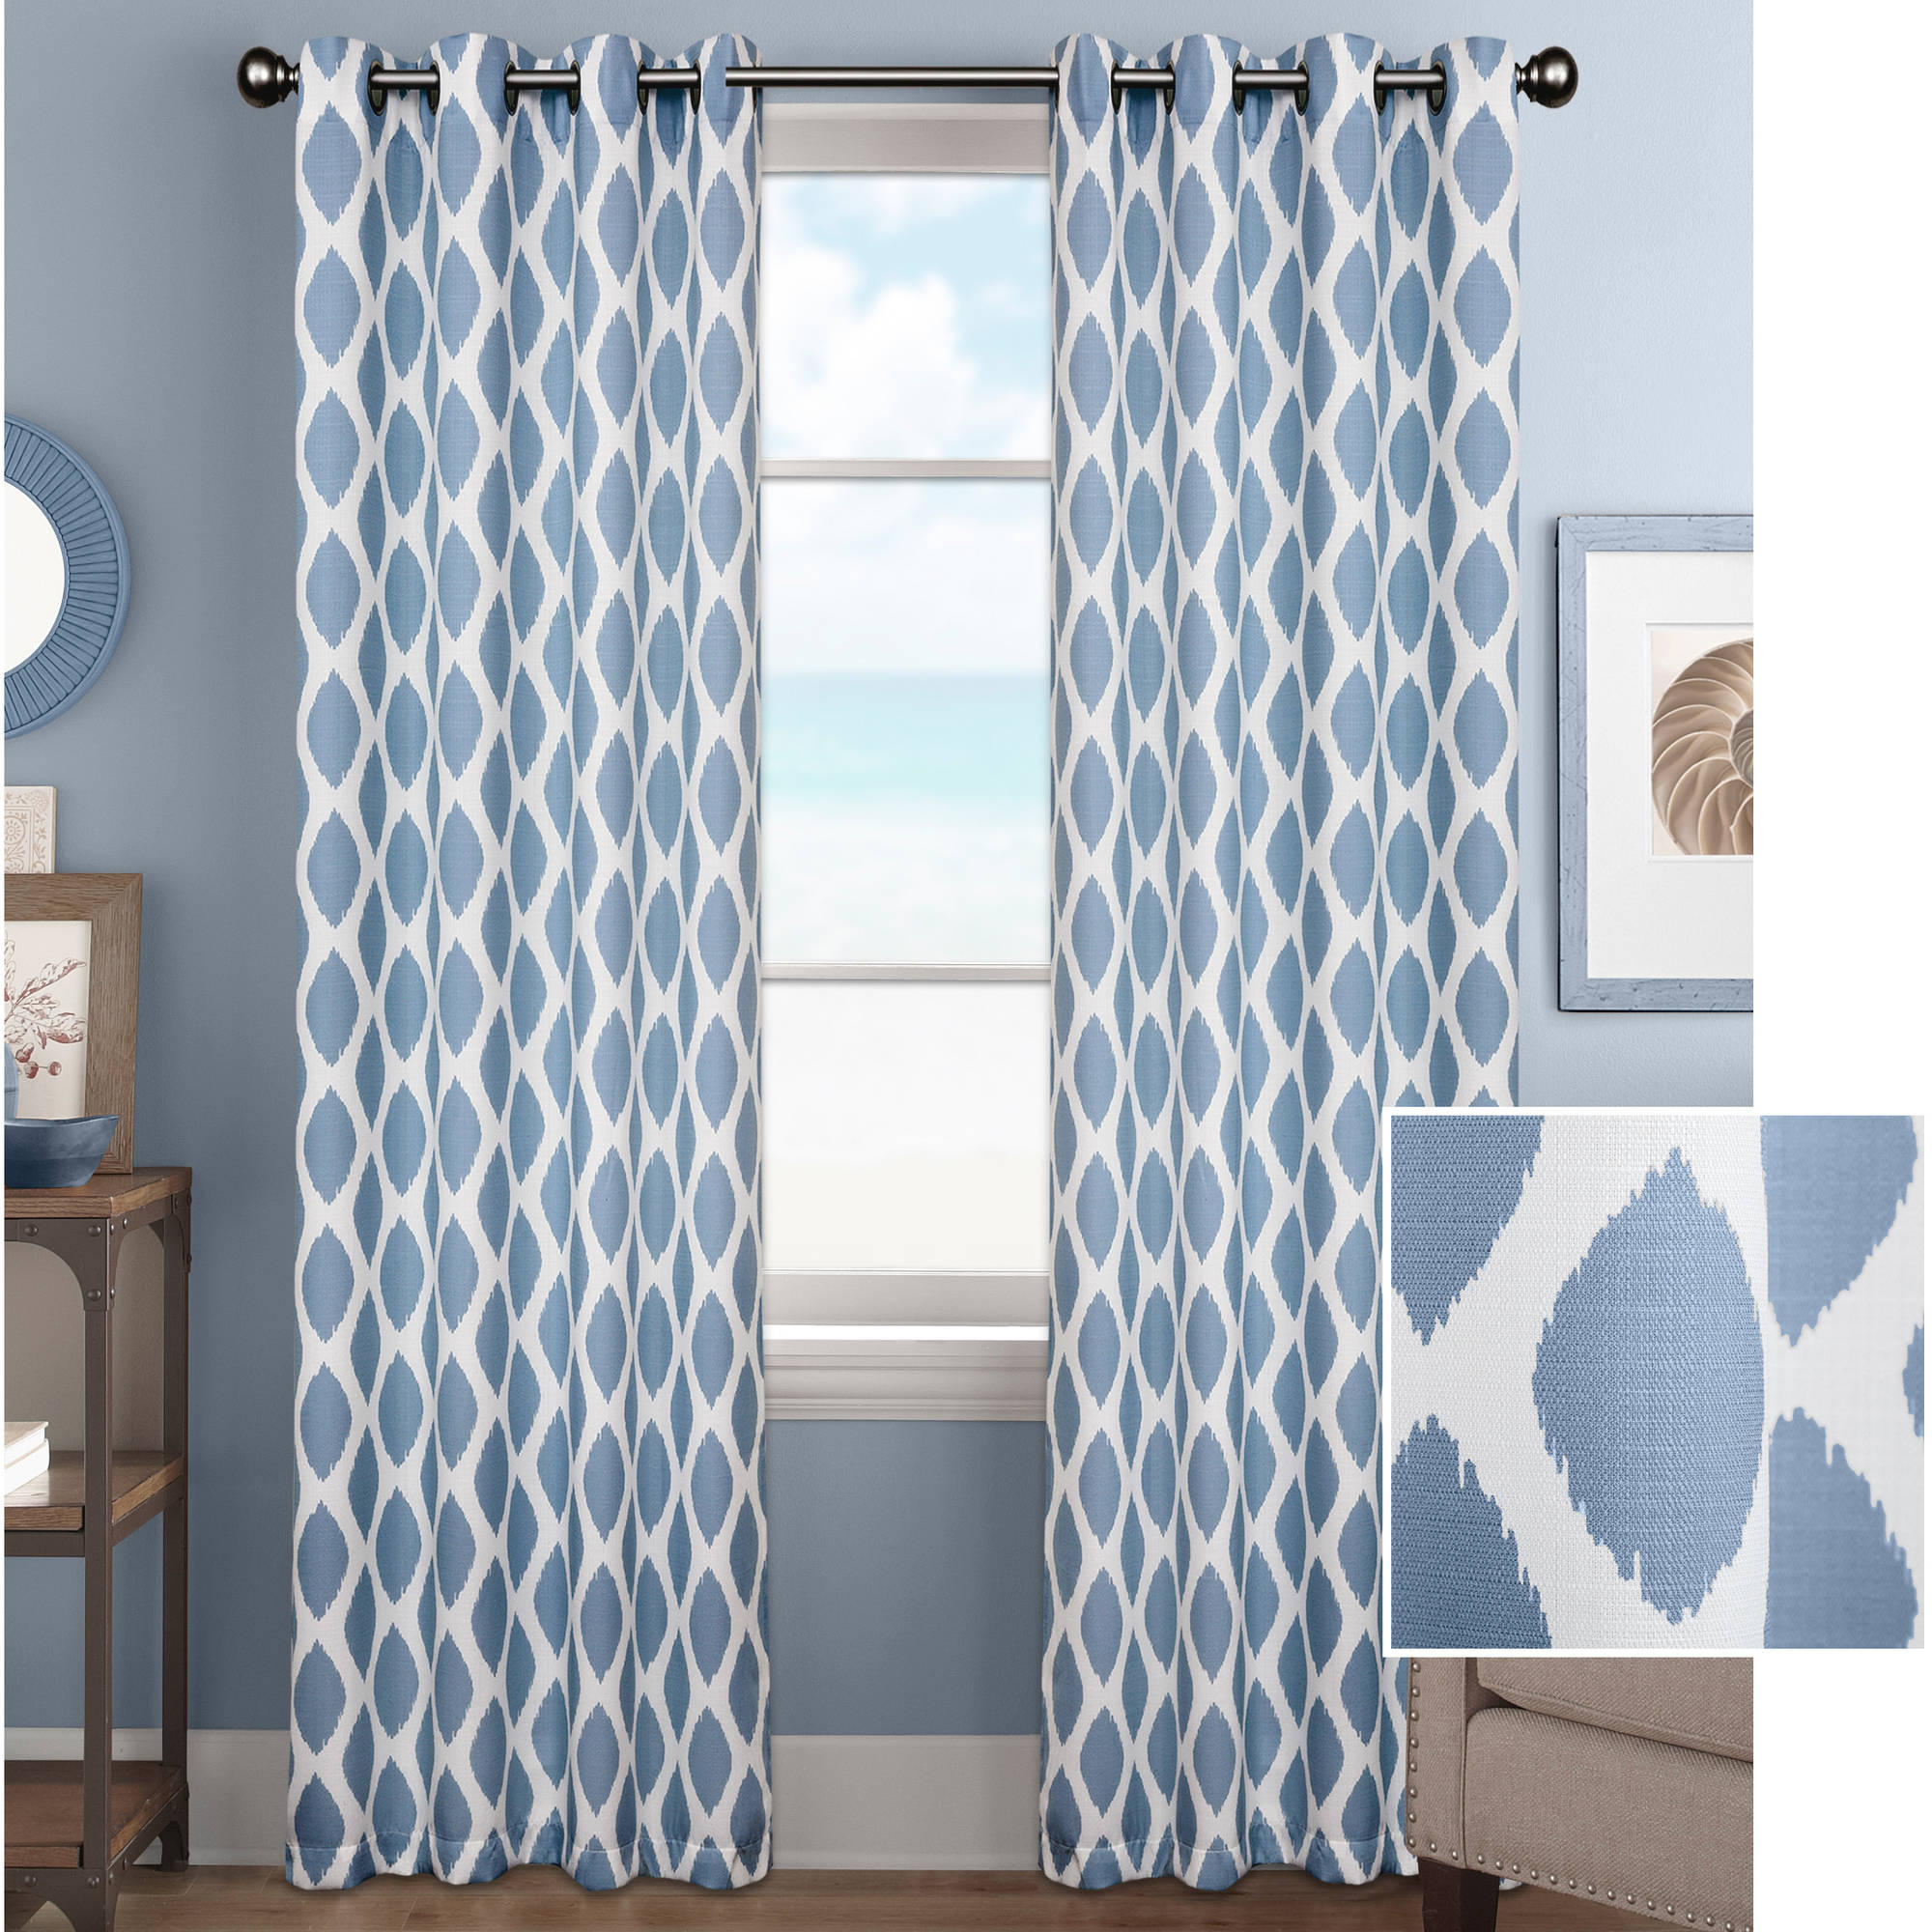 Better Homes and Gardens Ikat Diamonds Curtain Panel